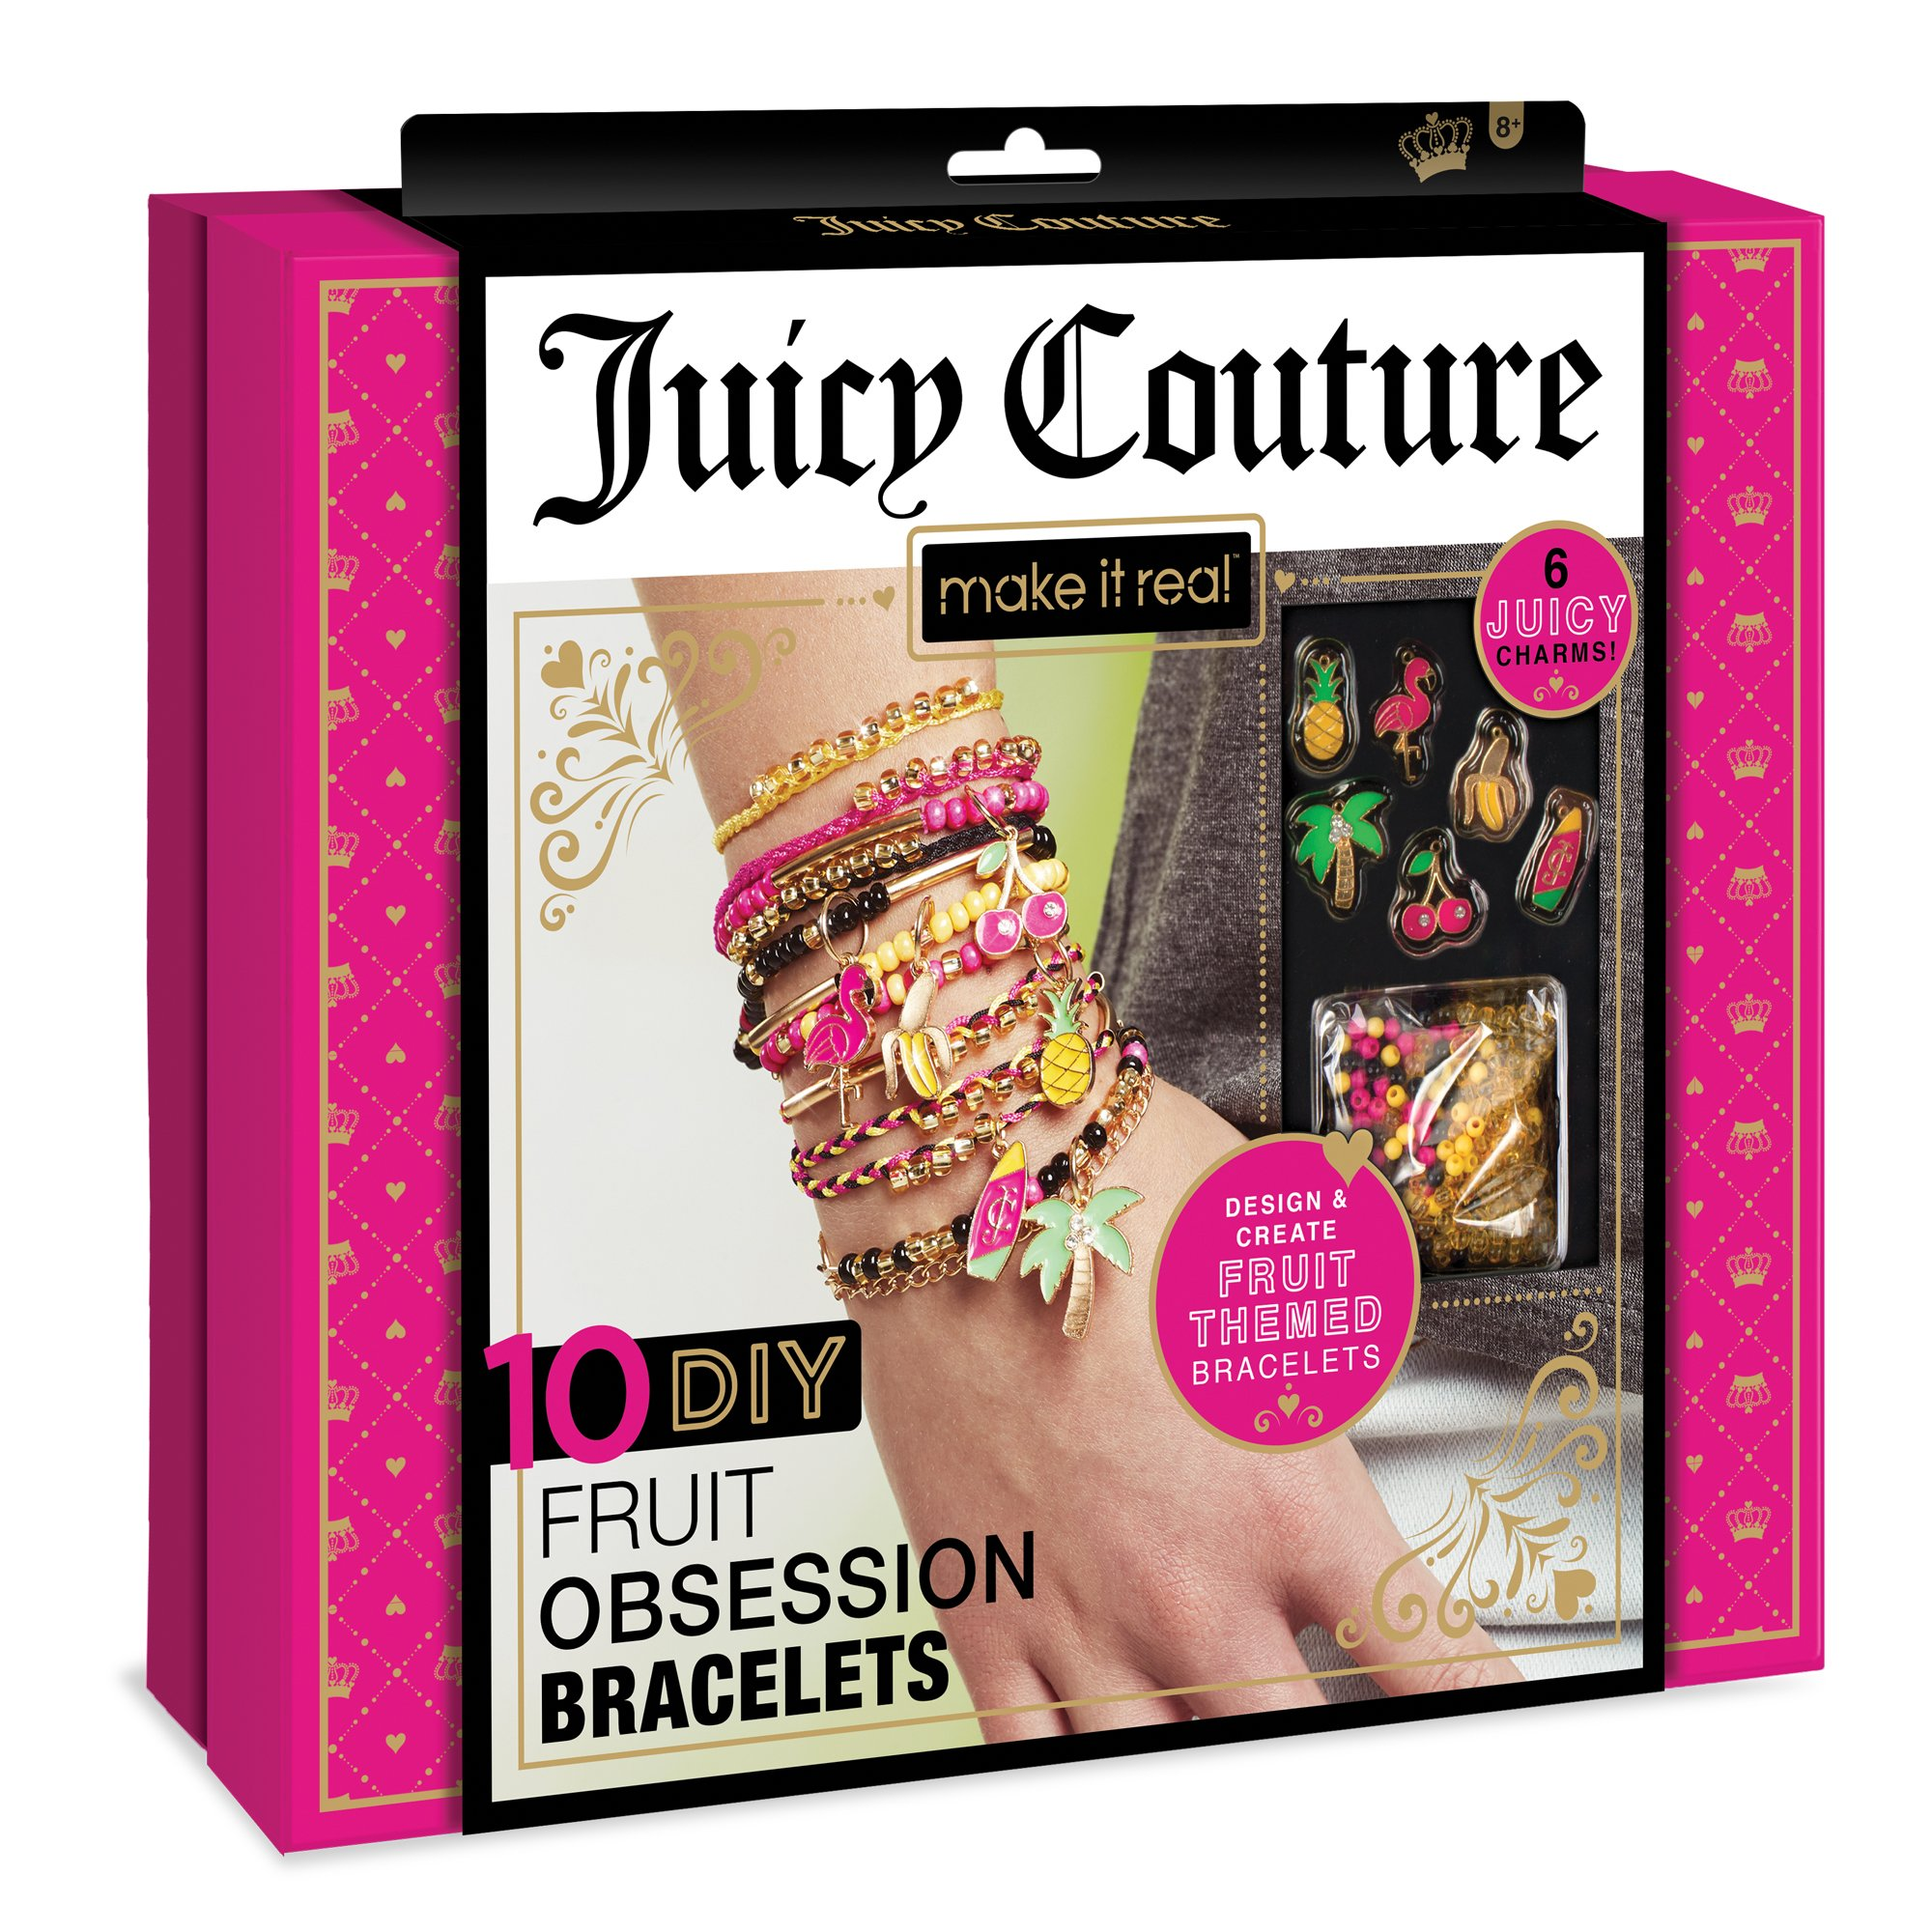 Make It Real Juicy Couture Fruit Obsessions Bracelets. DIY Bracelet Making Kit for Girls. Design and Create Girls Bracelets with Juicy Couture Charms, Beads, Gold Bangle, Nylon and Cotton Threads